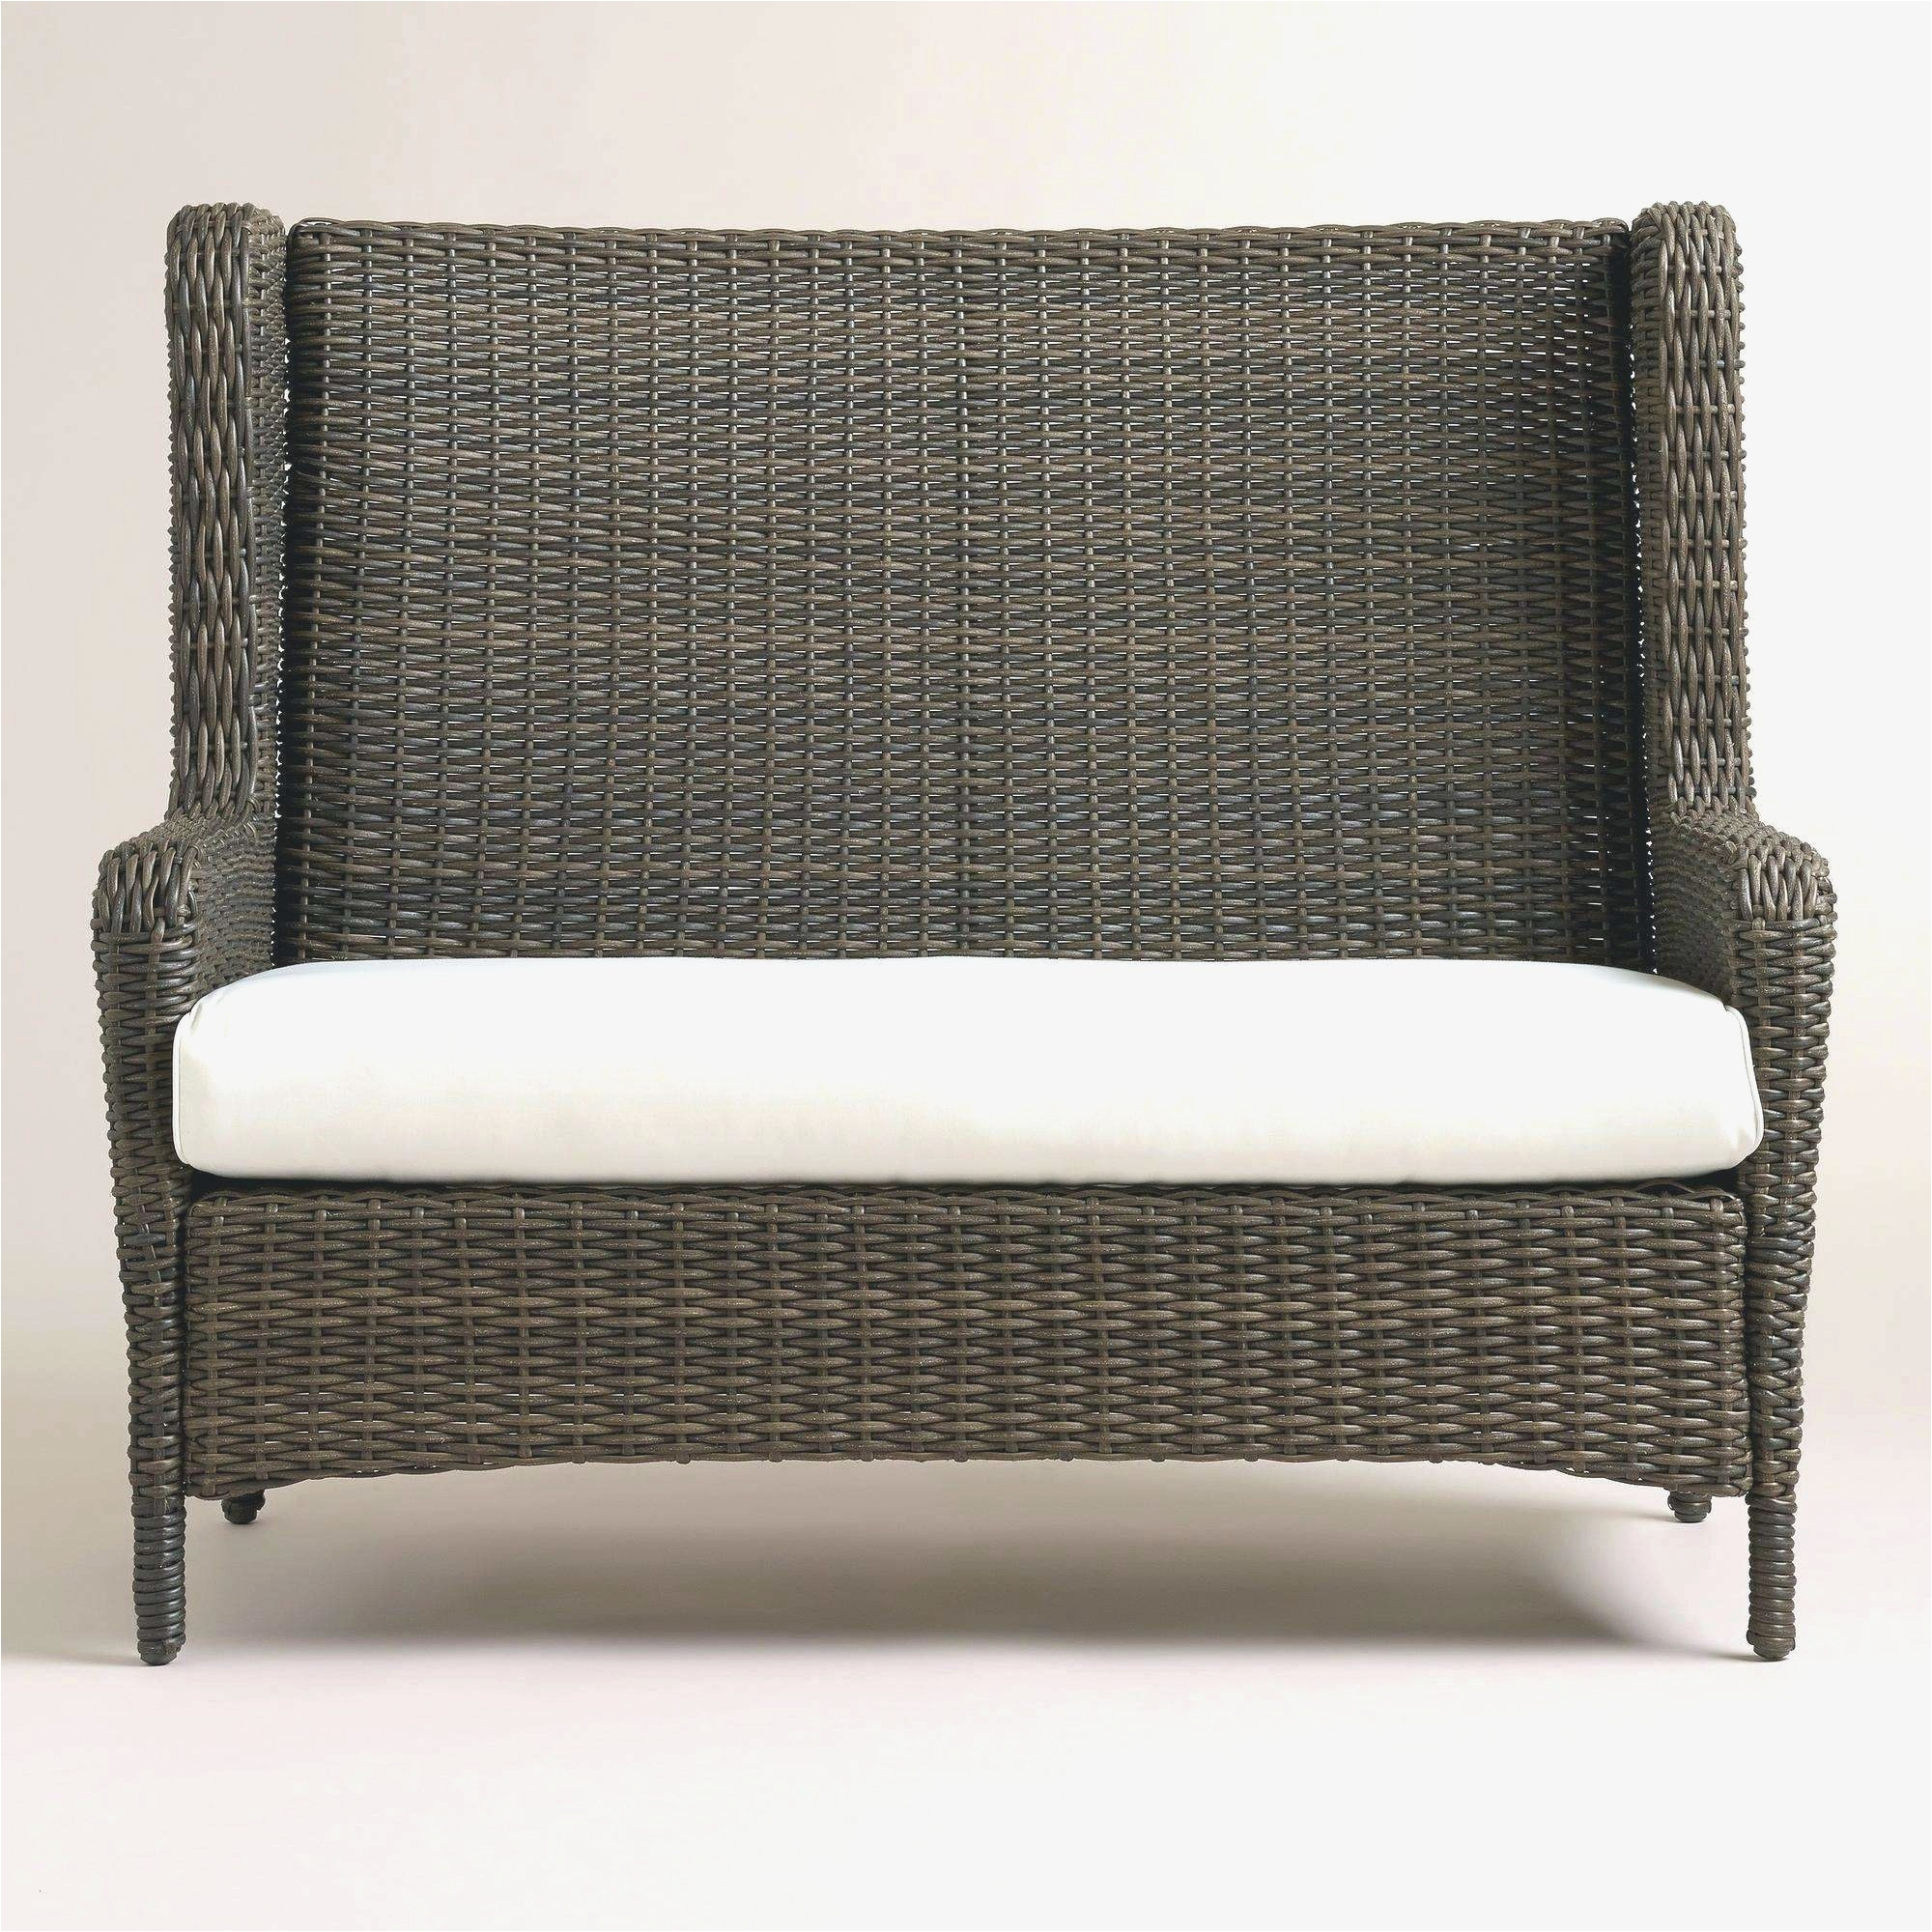 outdoor furniture luxury macys outdoor furniture awesome macys patio sets adorable outdoor